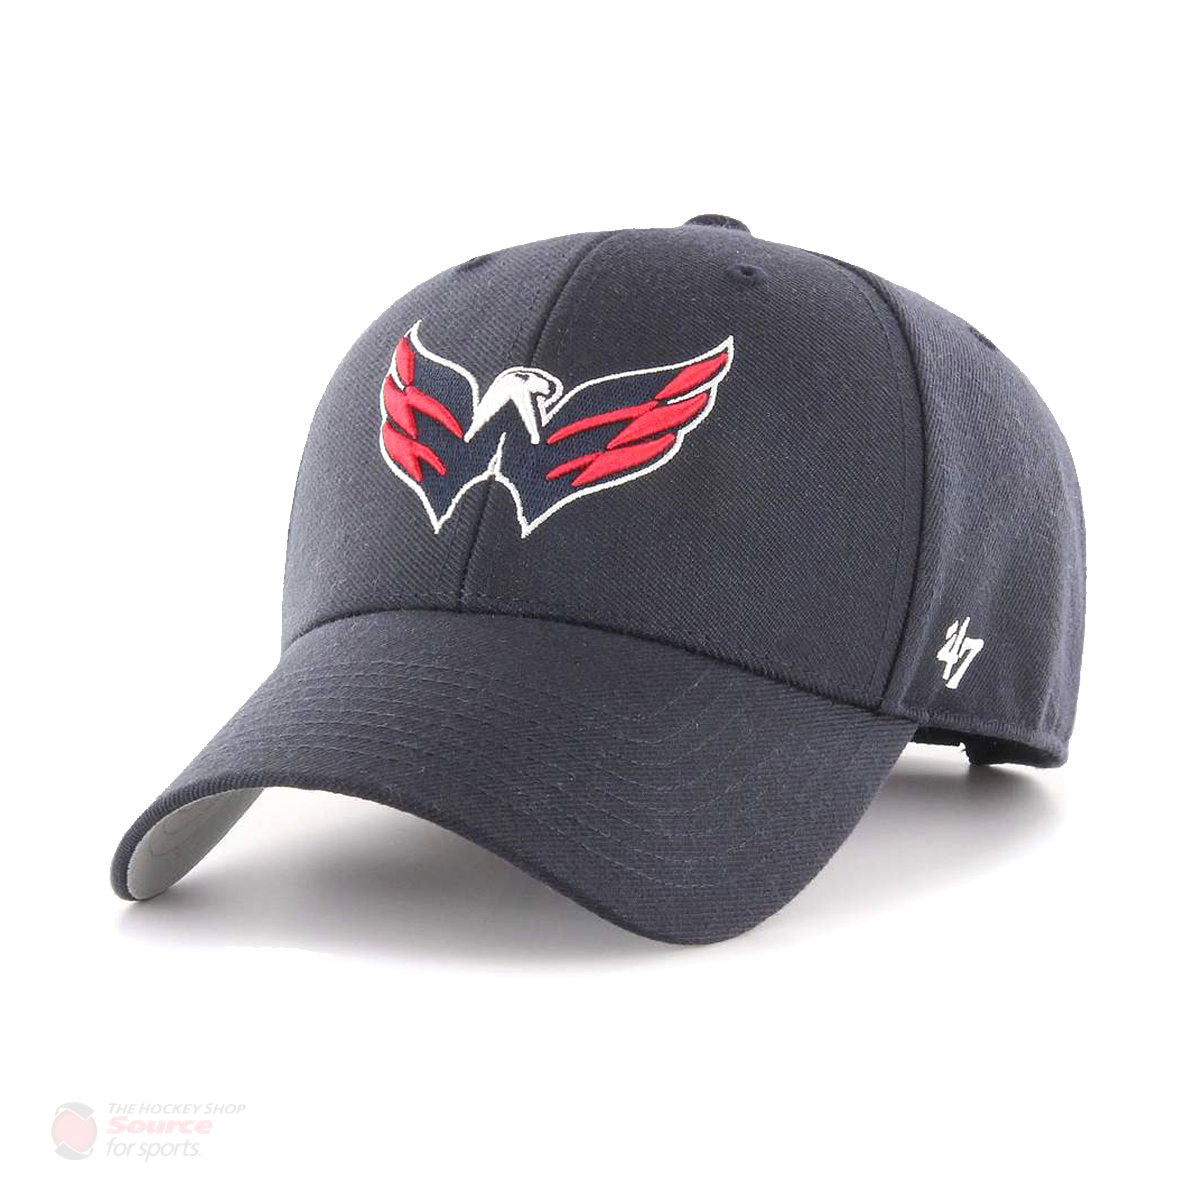 '47 Brand NHL MVP Adjustable Hat